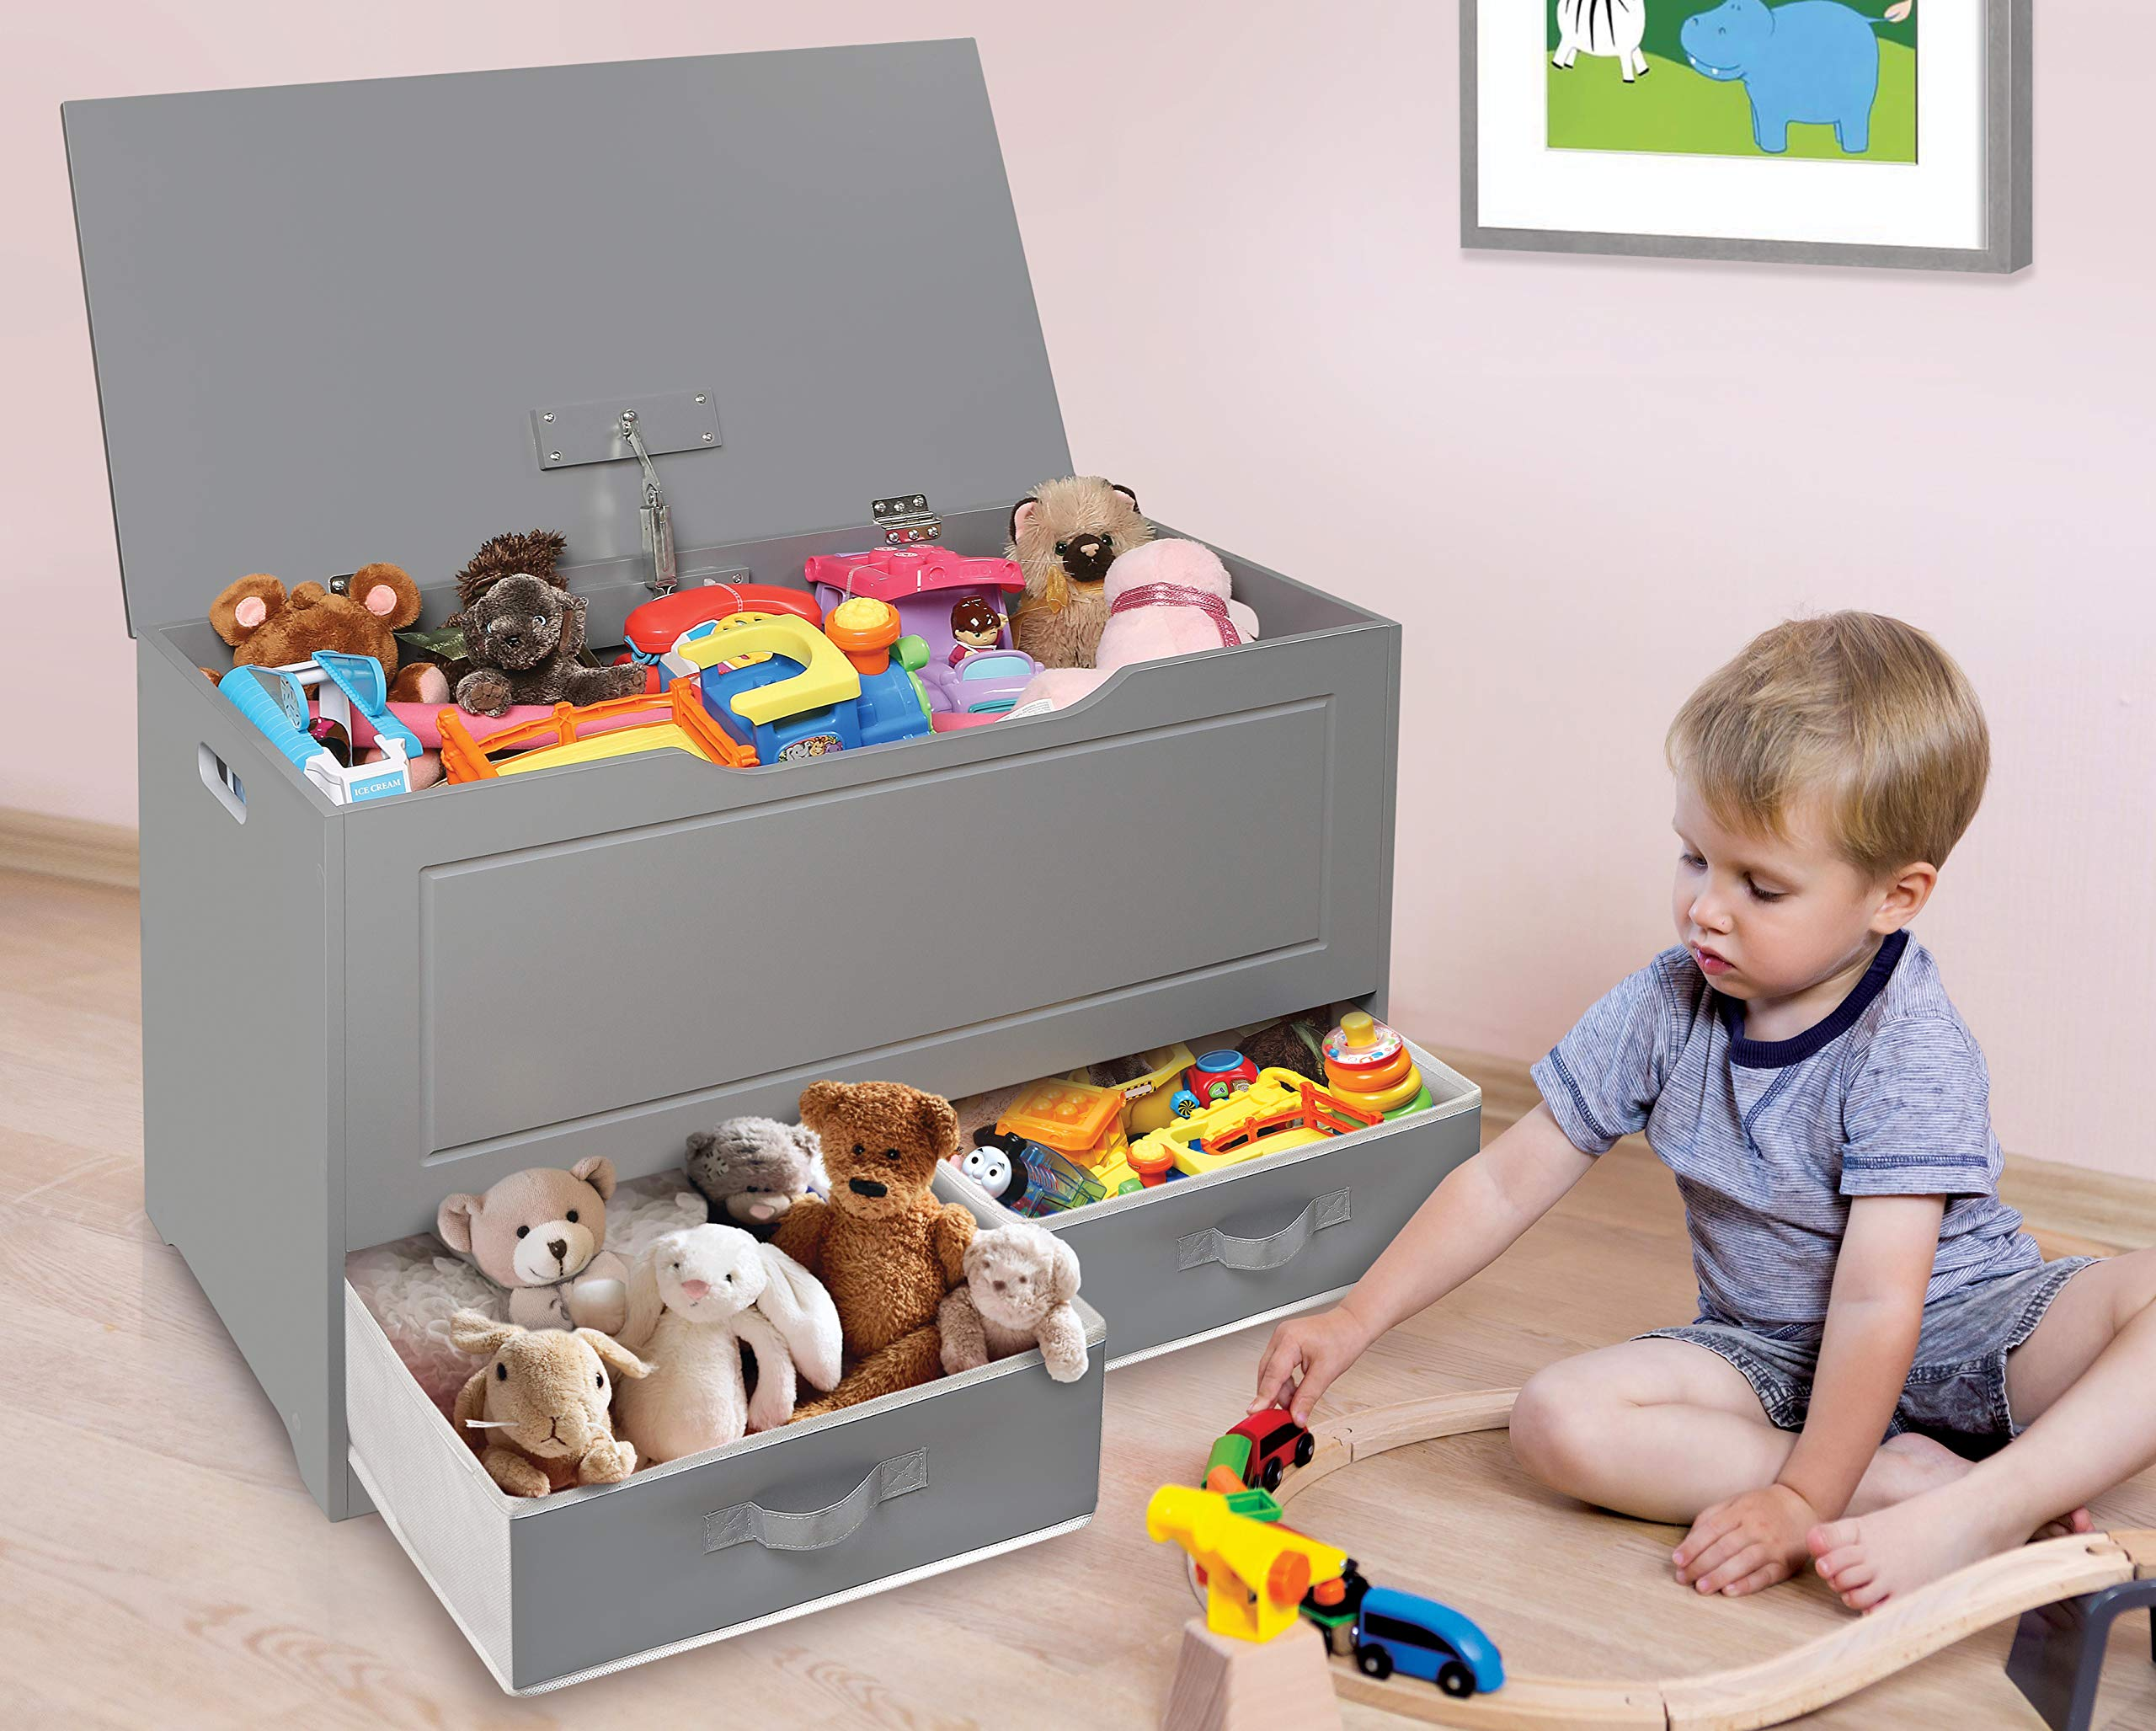 Badger Basket Up and Down Toy and Storage Box with 2 Basket Drawers, Gray/White by Badger Basket (Image #3)